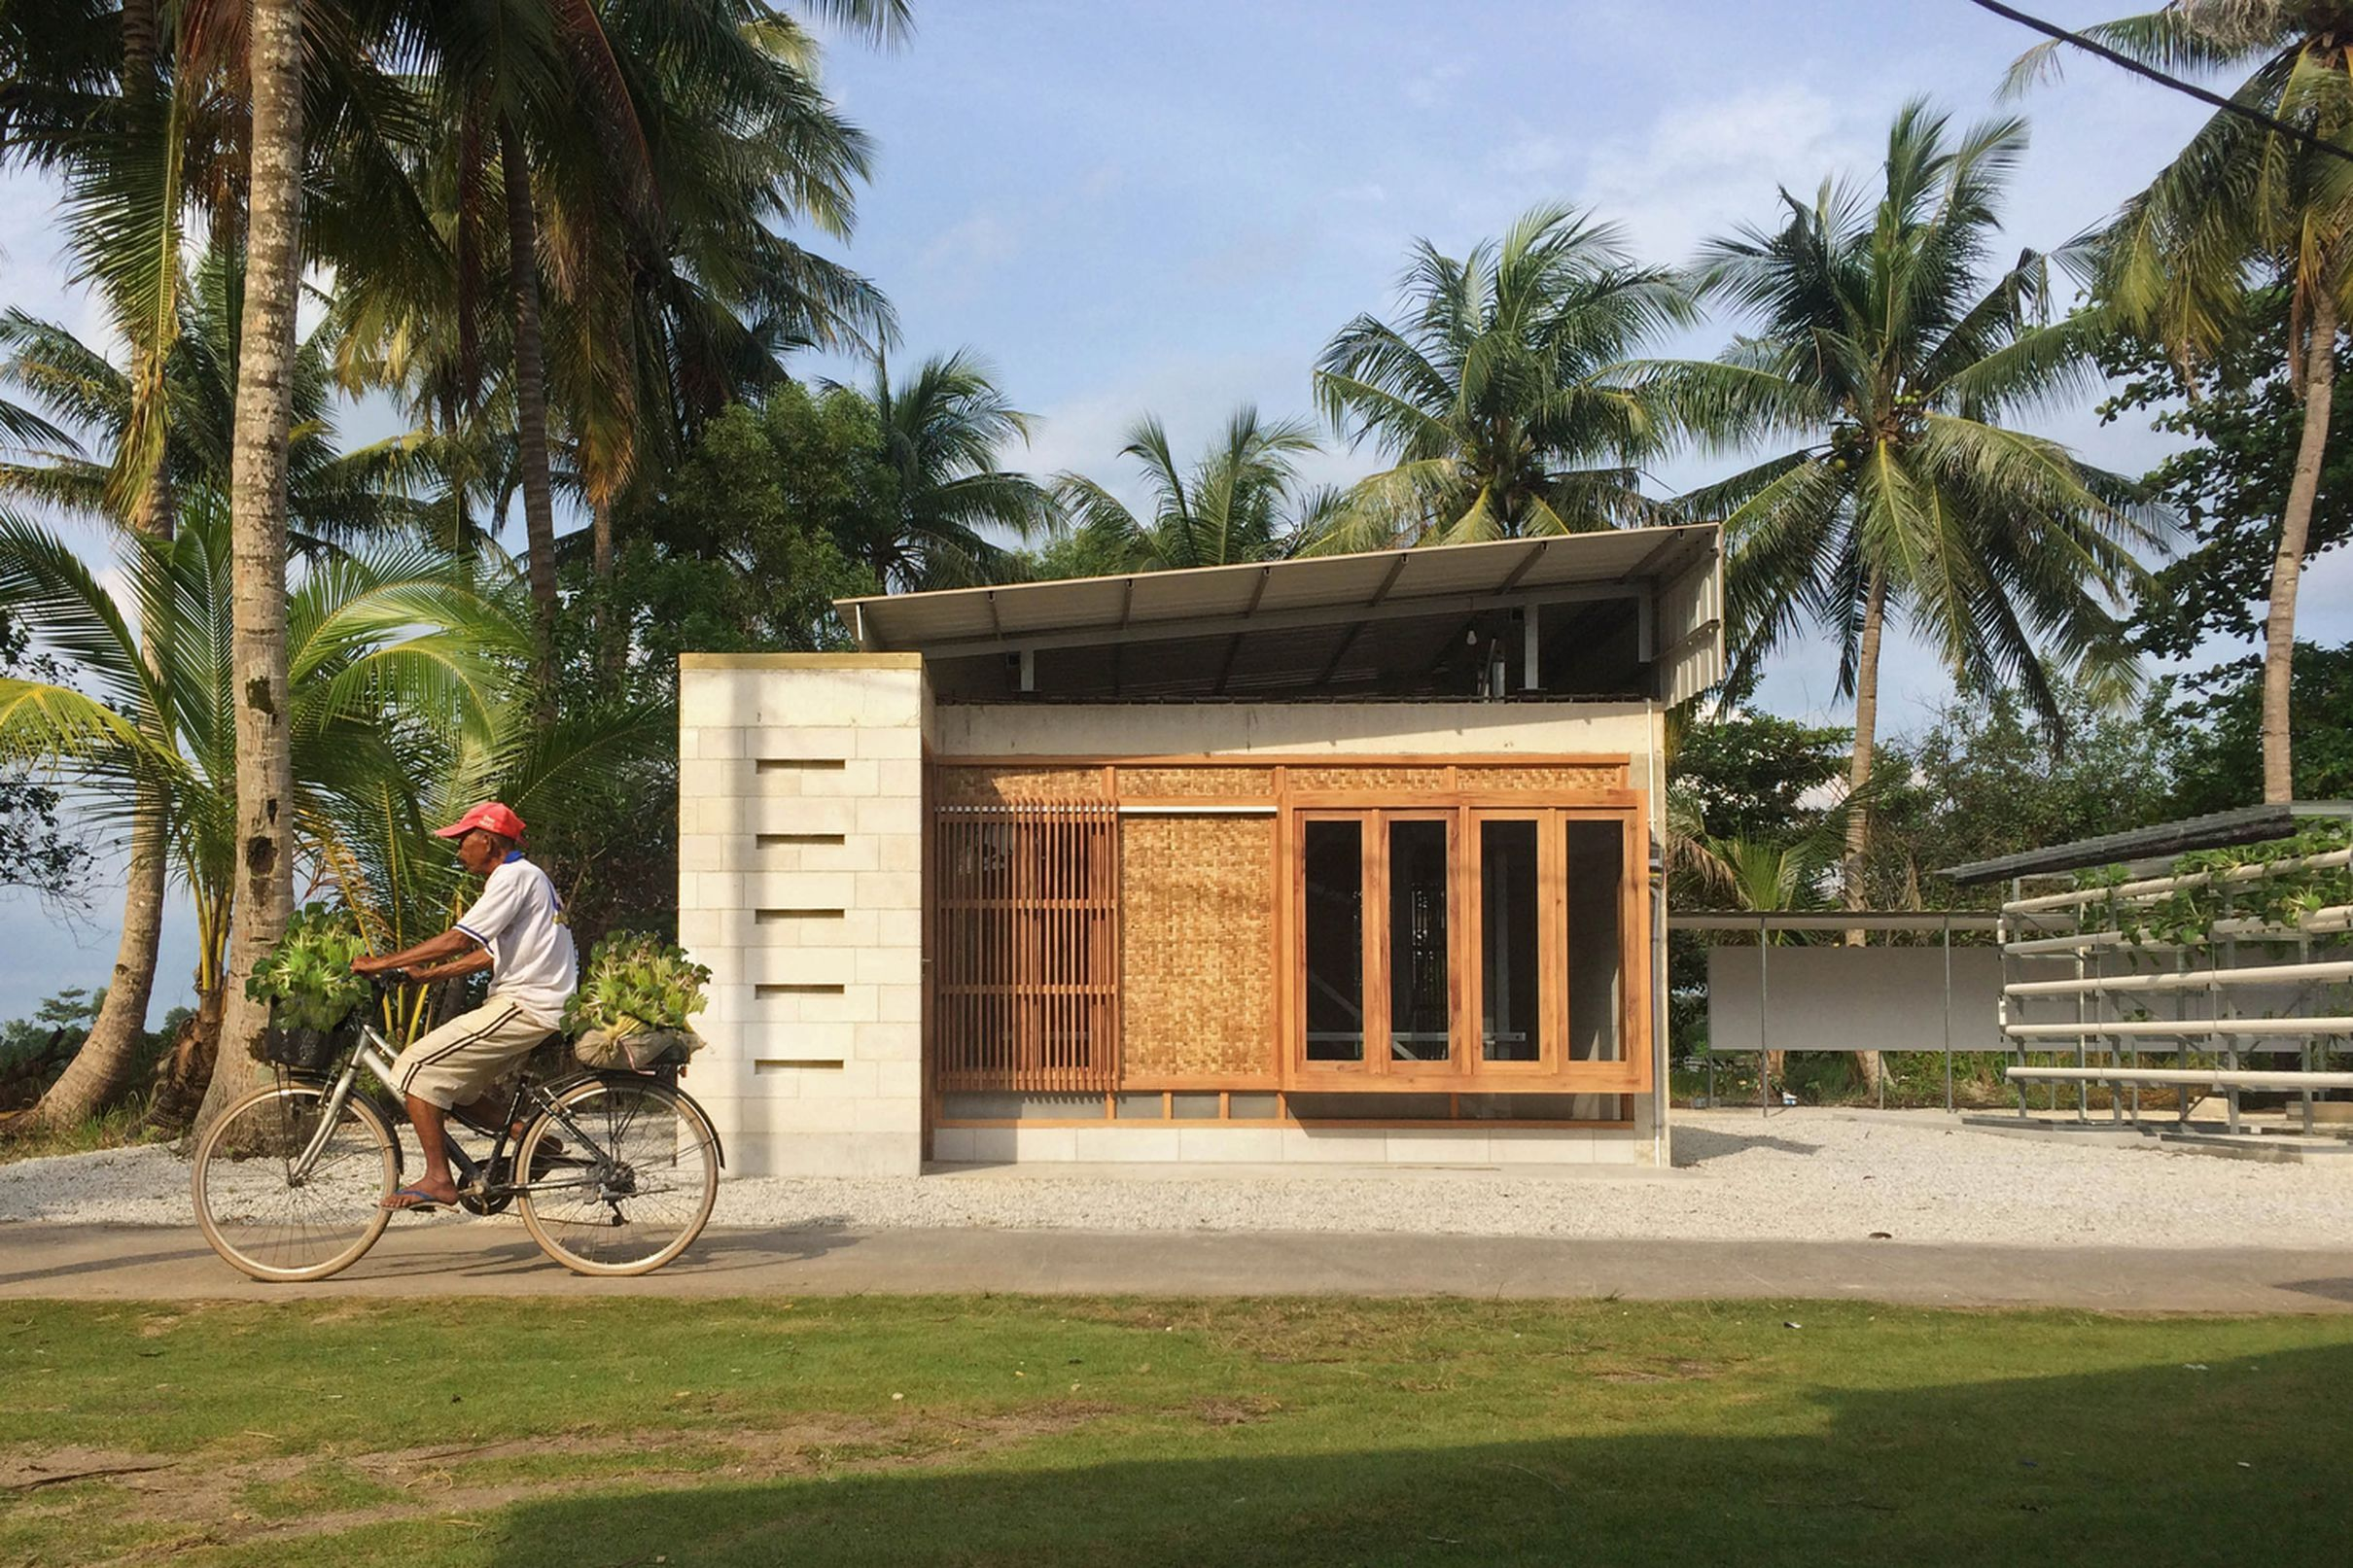 This Concrete Home Was Designed As Expandable Low Cost Housing Small Country Homes Low Cost Housing Small Cottage Designs